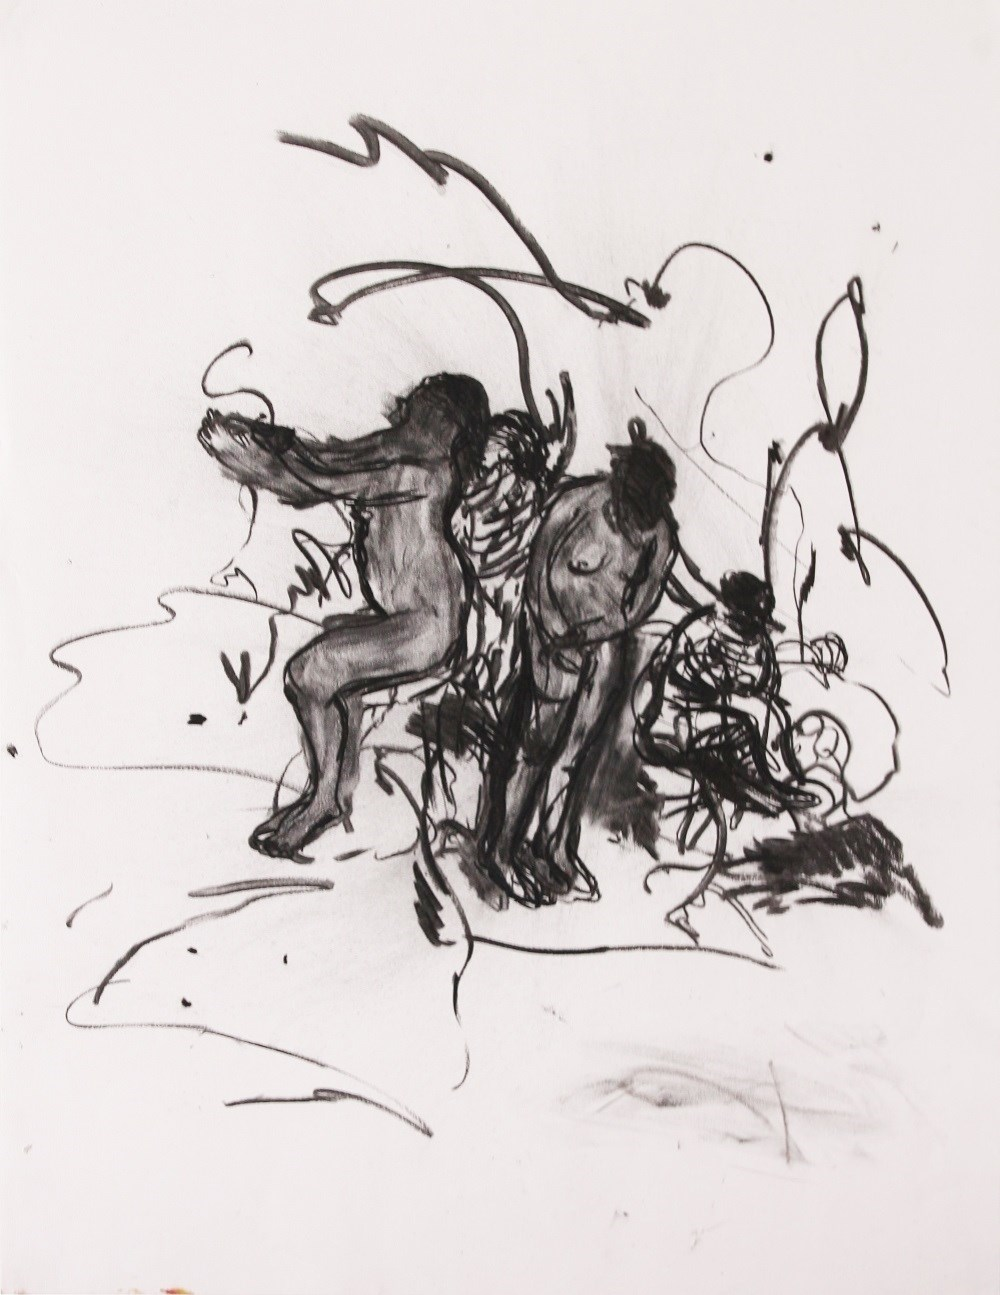 Cantavam em suspiros as noites perdidas, original Abstract Charcoal Drawing and Illustration by Rúben Lança